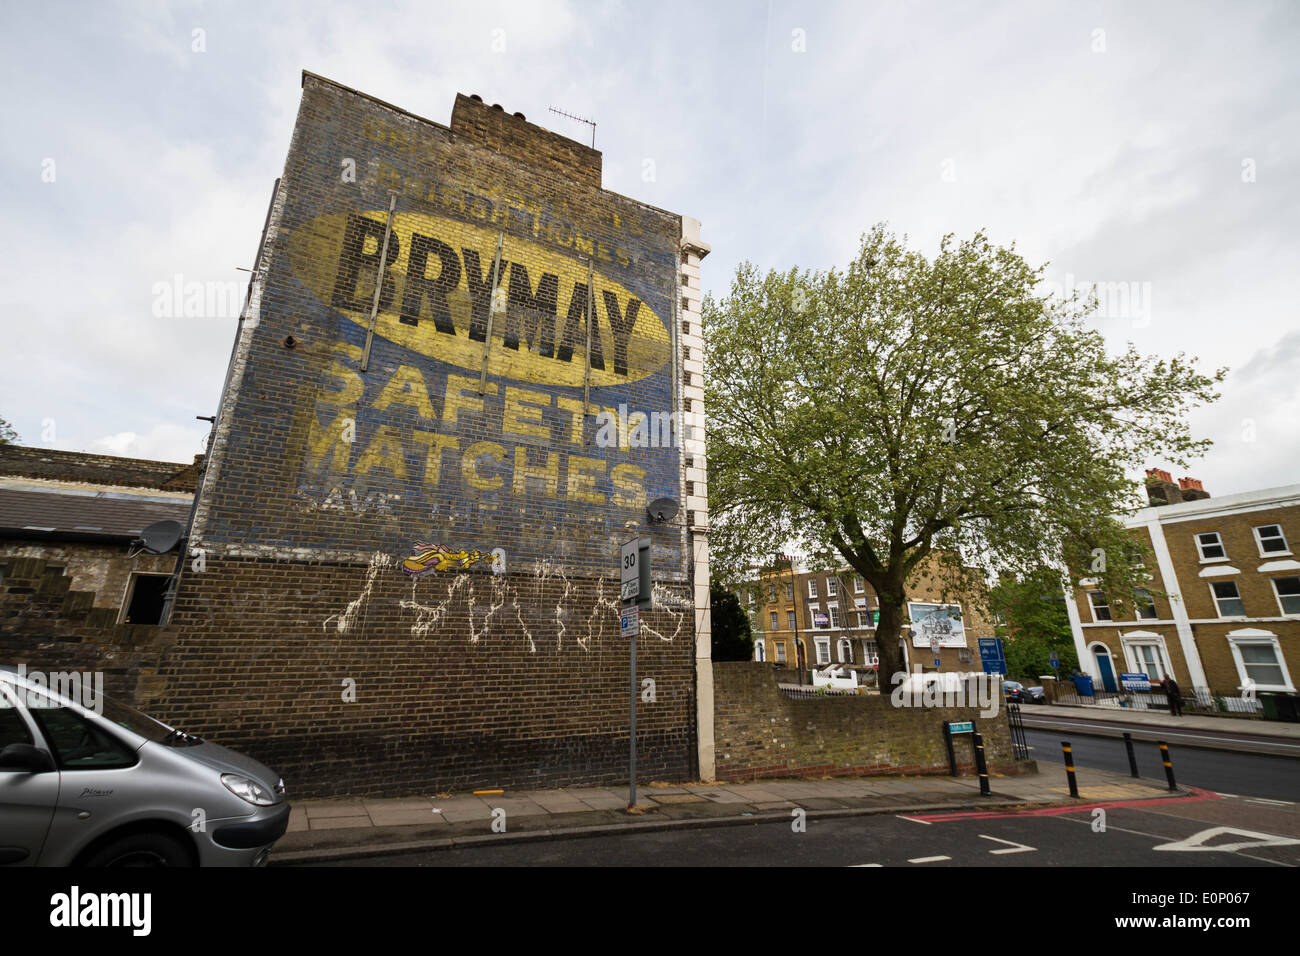 Bryant & May 'Brymay' safety matches vintage advert in South East London. - Stock Image